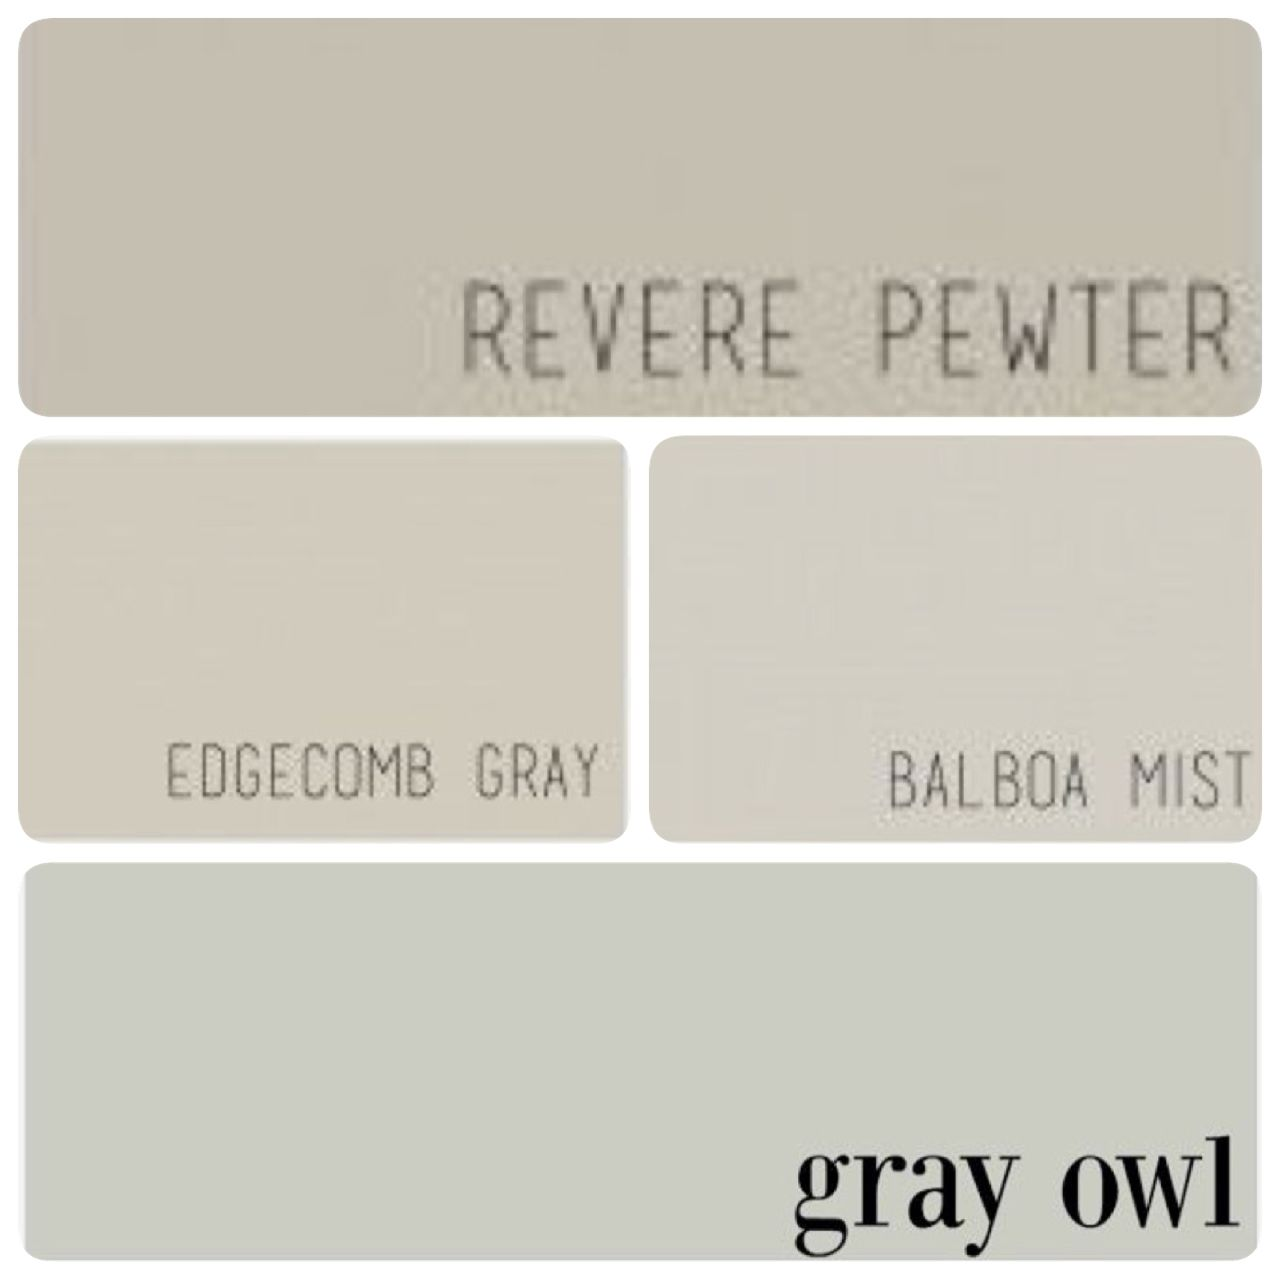 Revere Pewter For Living Room Dining Room And Kitchen Edgecomb Gray For Master Bedroom